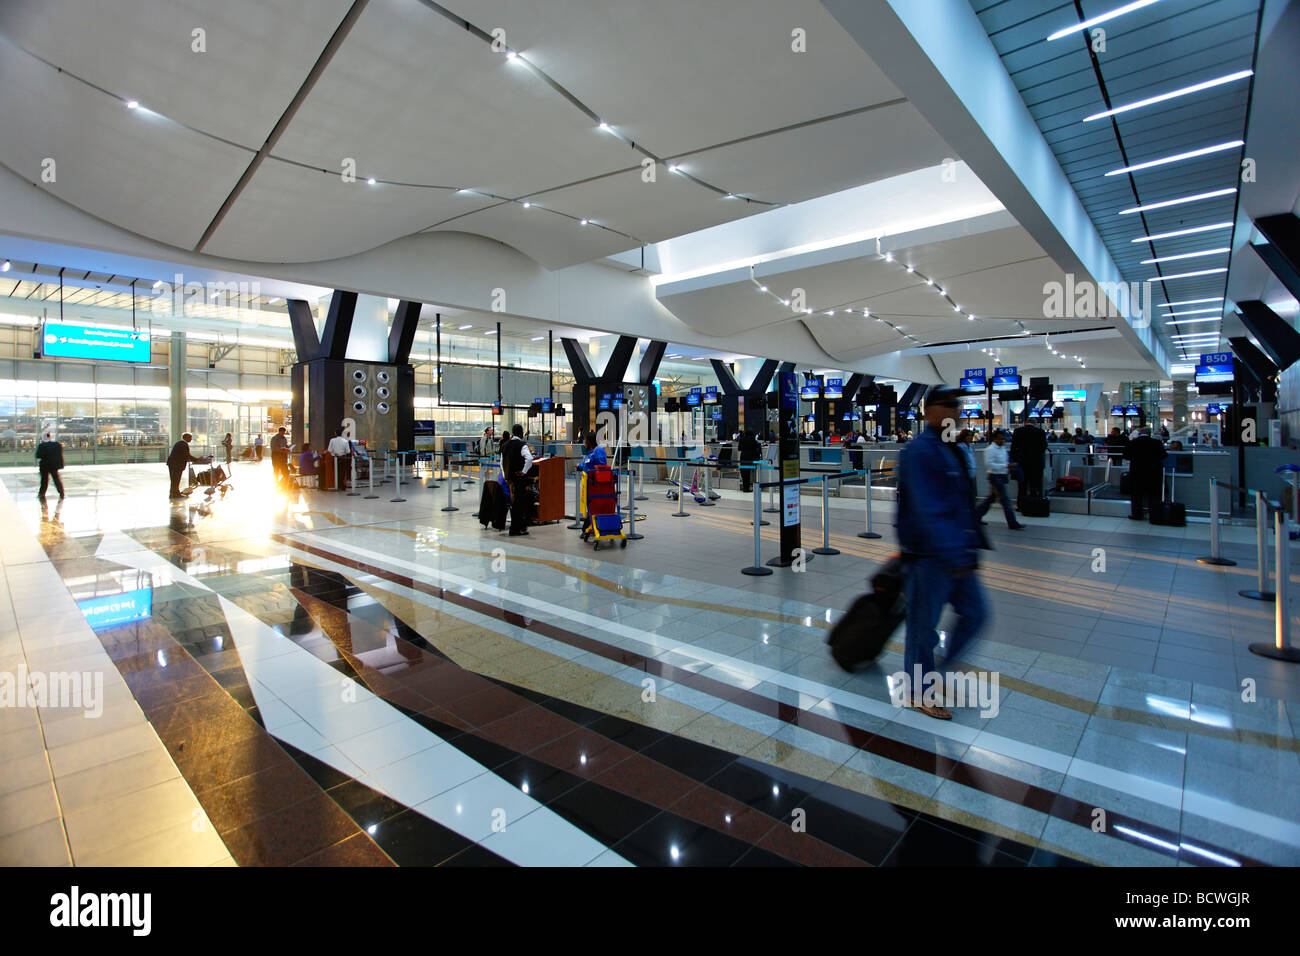 Departure halle, check in, O R Tambo International Airport, Johannesburg, South Africa, Africa - Stock Image